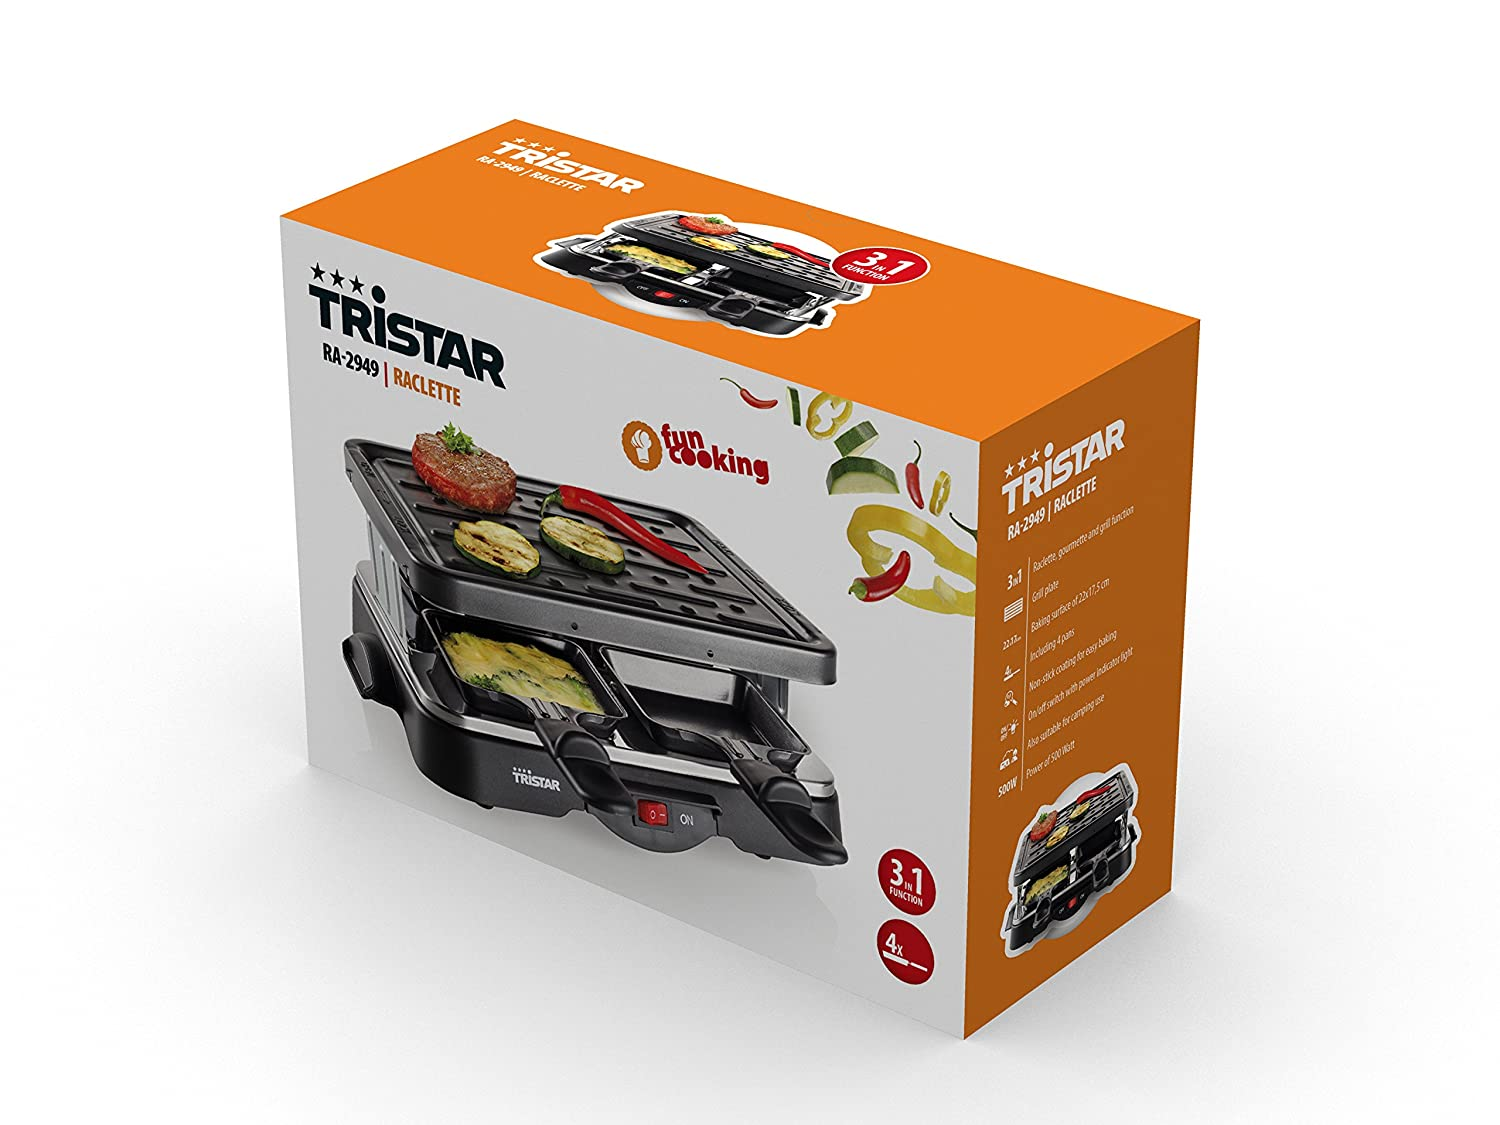 Tristar Raclette 4 Pans-Grill Plate